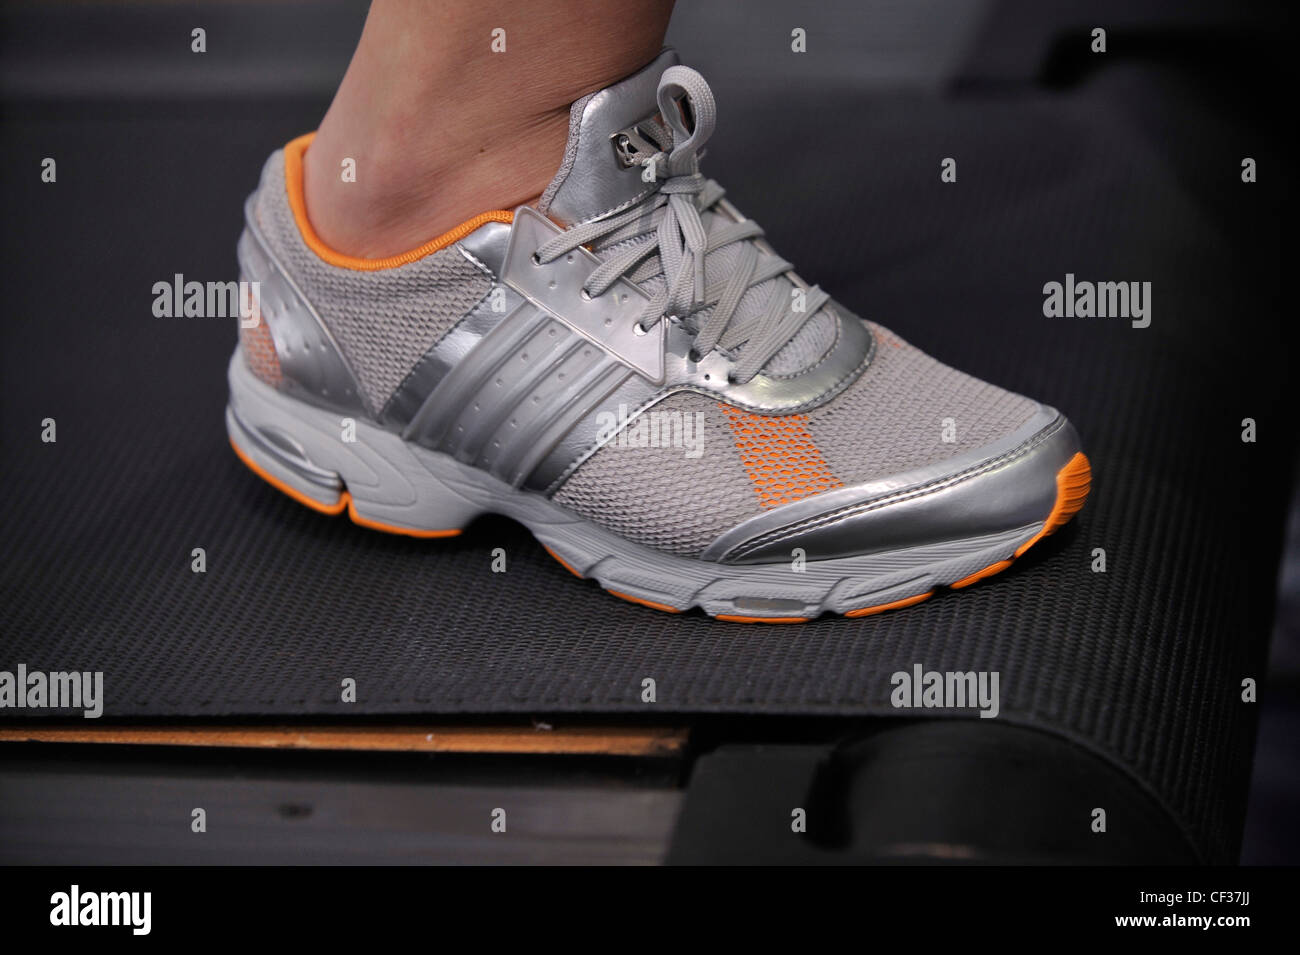 hot sale online 6855e 8abac Stella McCartney Adidas London Ready to Wear Spring Summer Grey Adidas  trainers - Stock Image